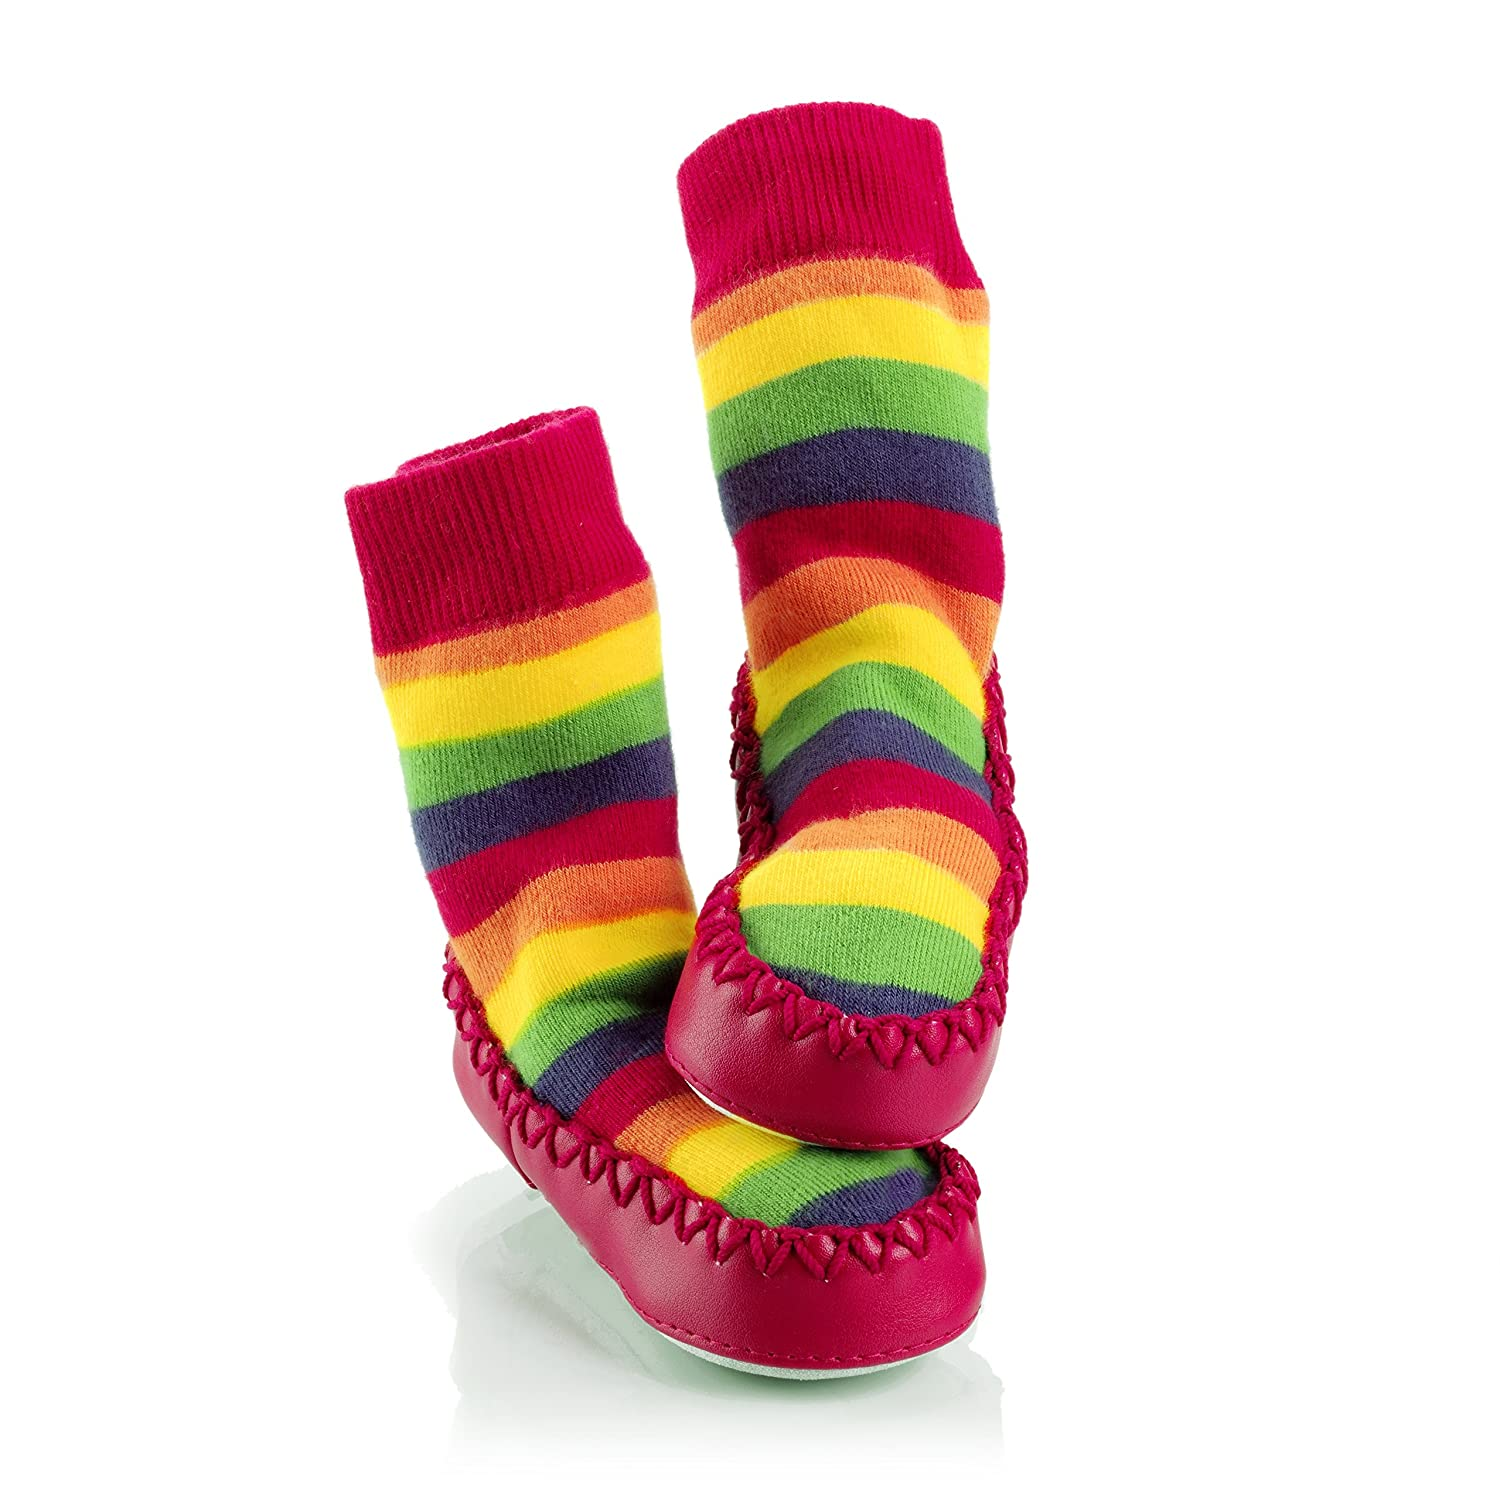 Mocc Ons Baby Infant Slipper Socks 18-24 Months Rainbow Stripe Sock Ons MOCCONRB18-24 B0079NEAX4